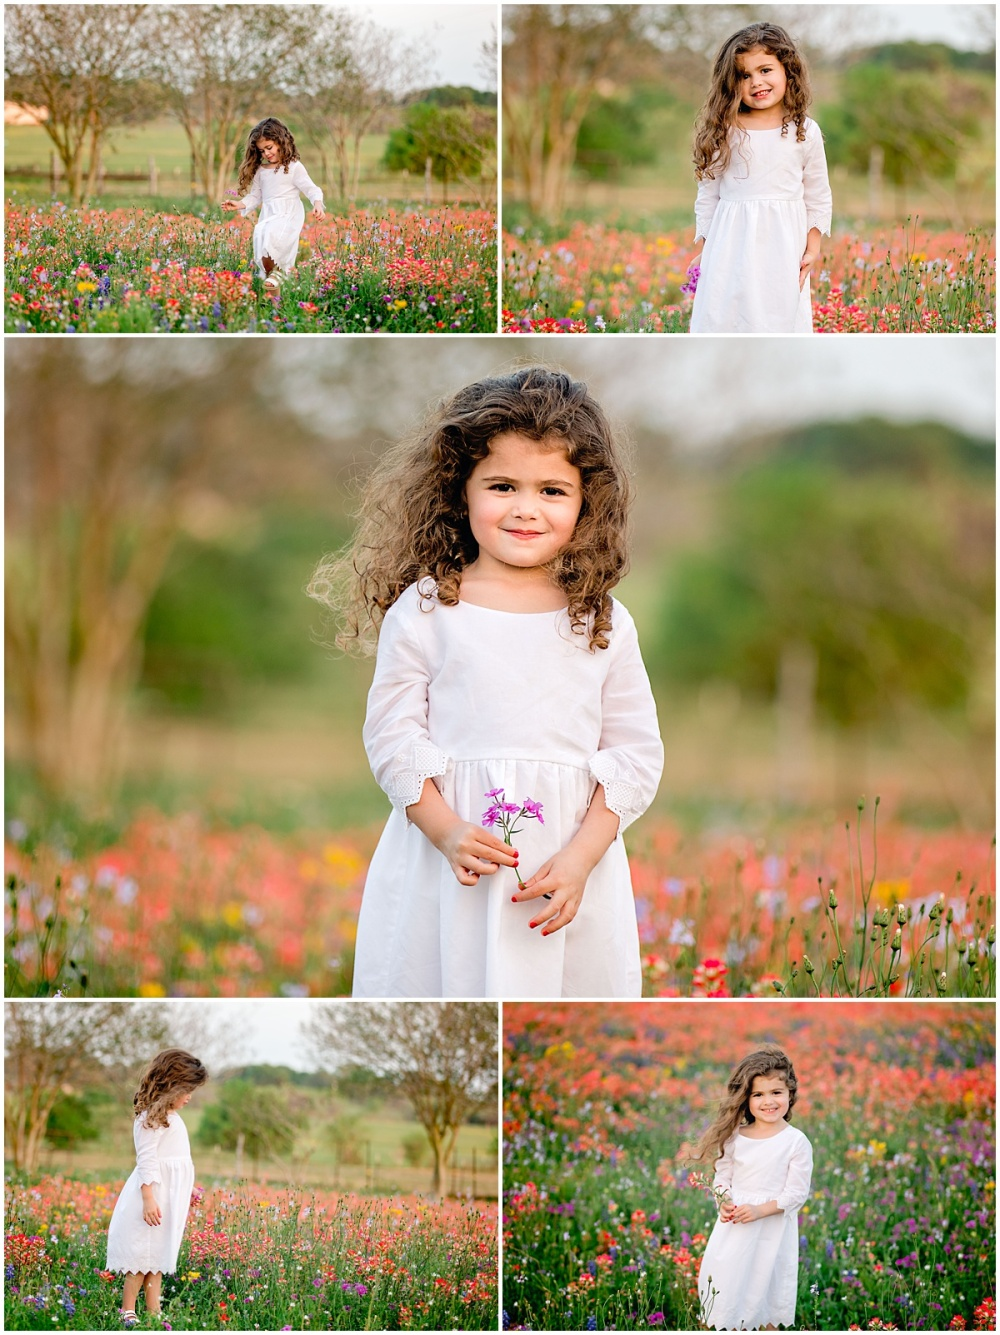 Wildflowers-Texas-Bluebonnets-Spring-Birthday-Photo-Session-Kids-Carly-Barton-Photography_0007.jpg